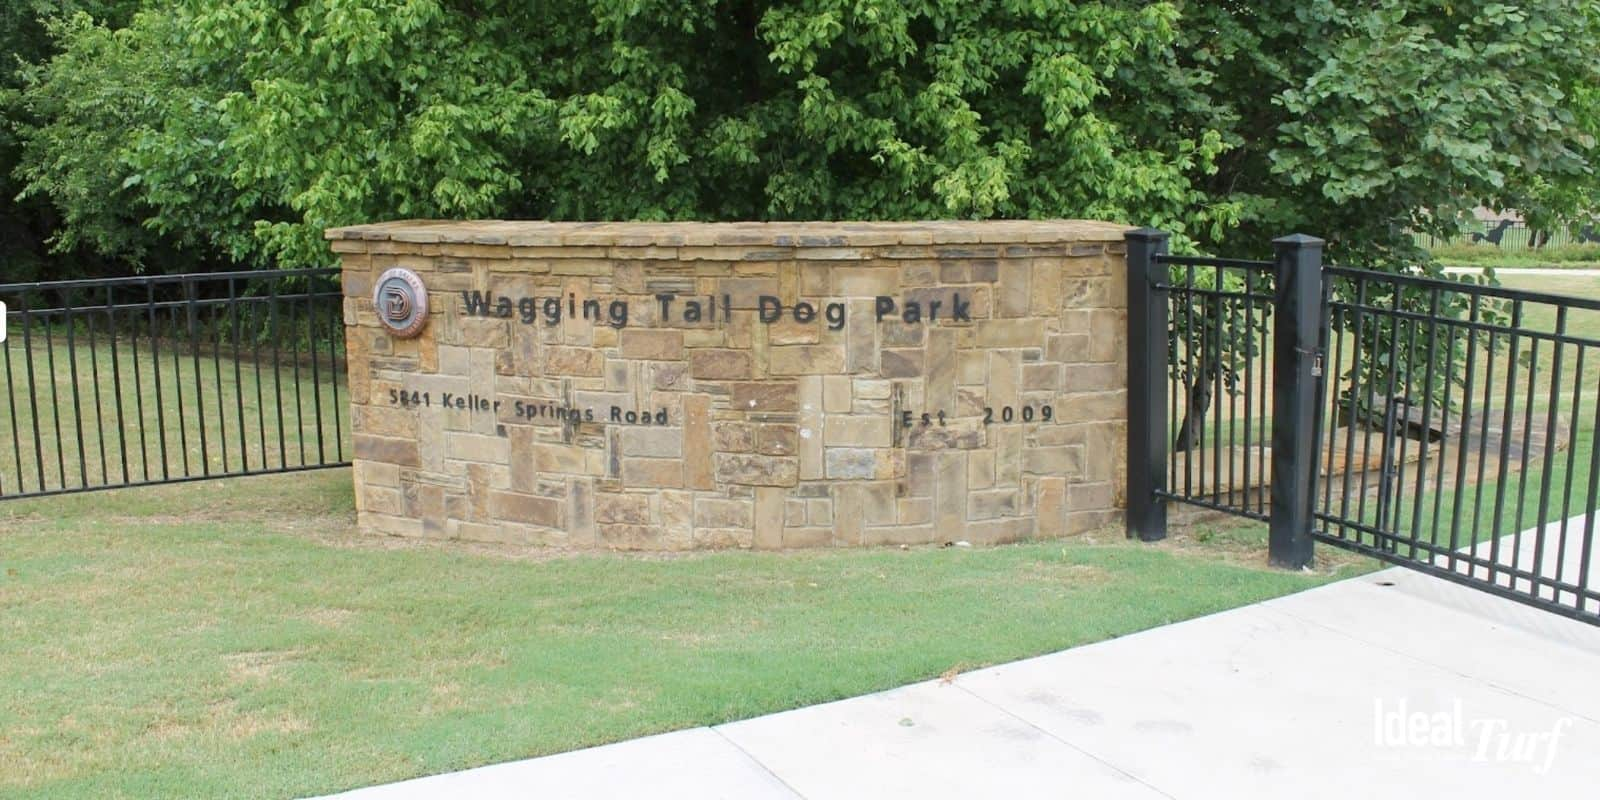 1. Wagging Tail Dog Park